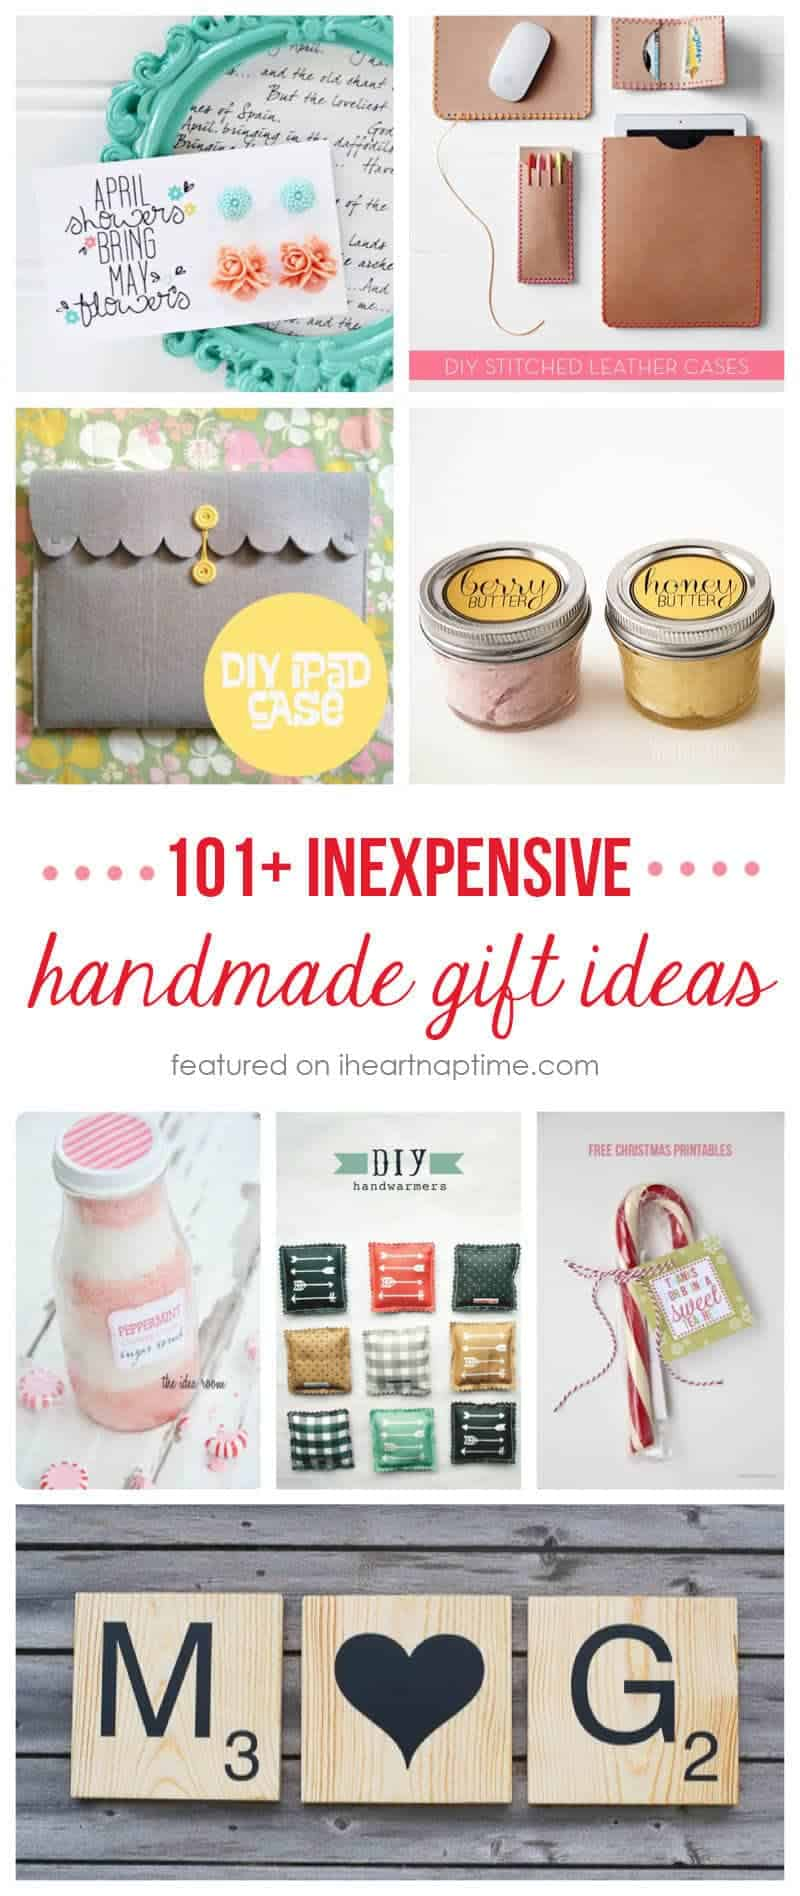 101 inexpensive handmade christmas gifts i heart nap time 101 inexpensive handmade christmas gifts on iheartnaptime negle Images